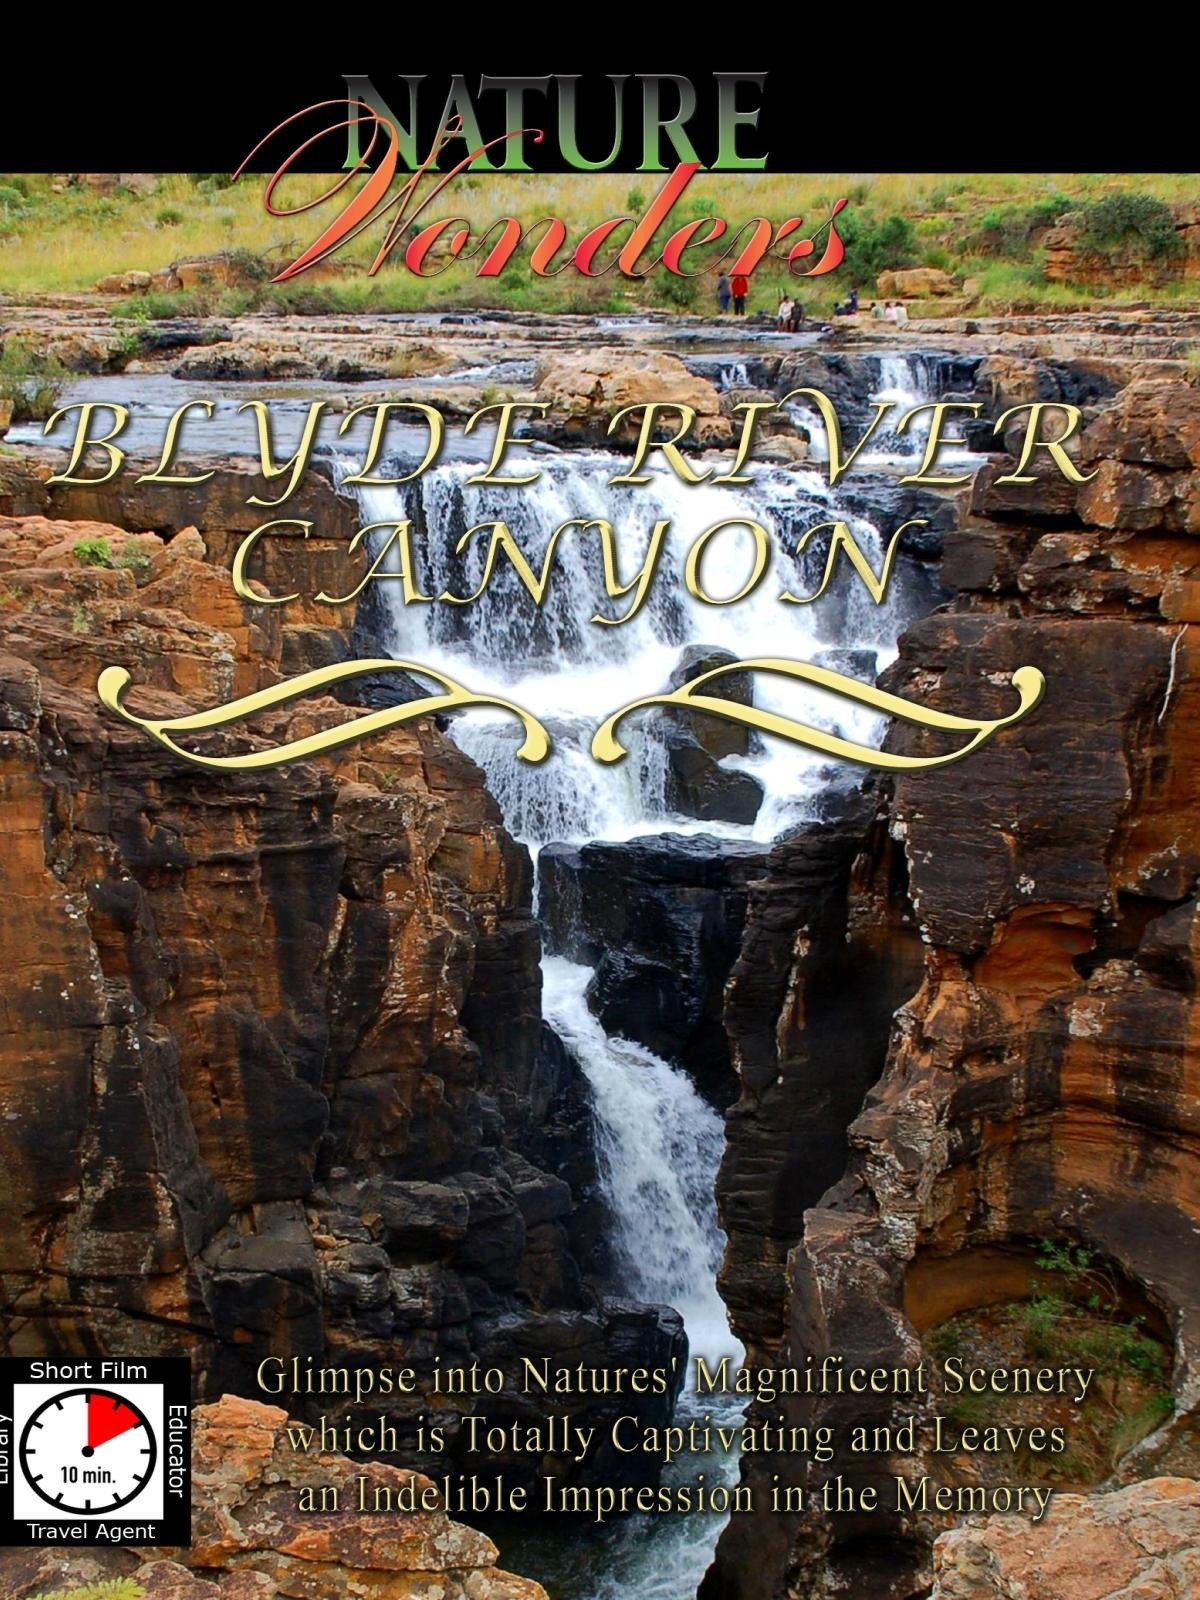 Nature Wonders - Blyde River Canyon - South Africa